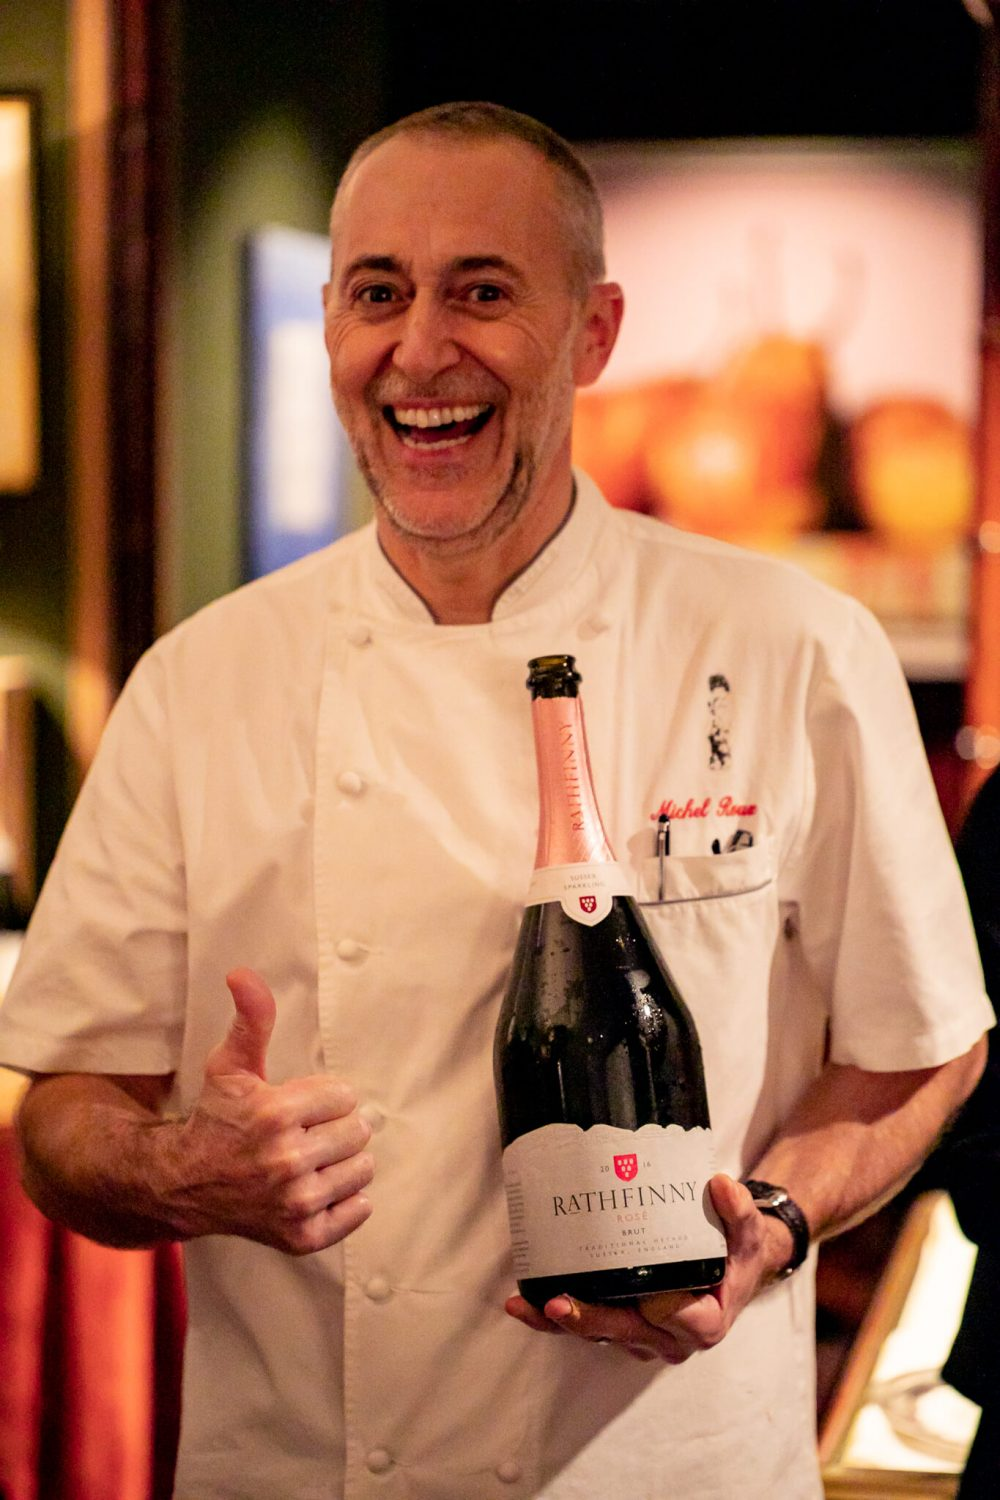 Michel Roux Jr Rathfinny